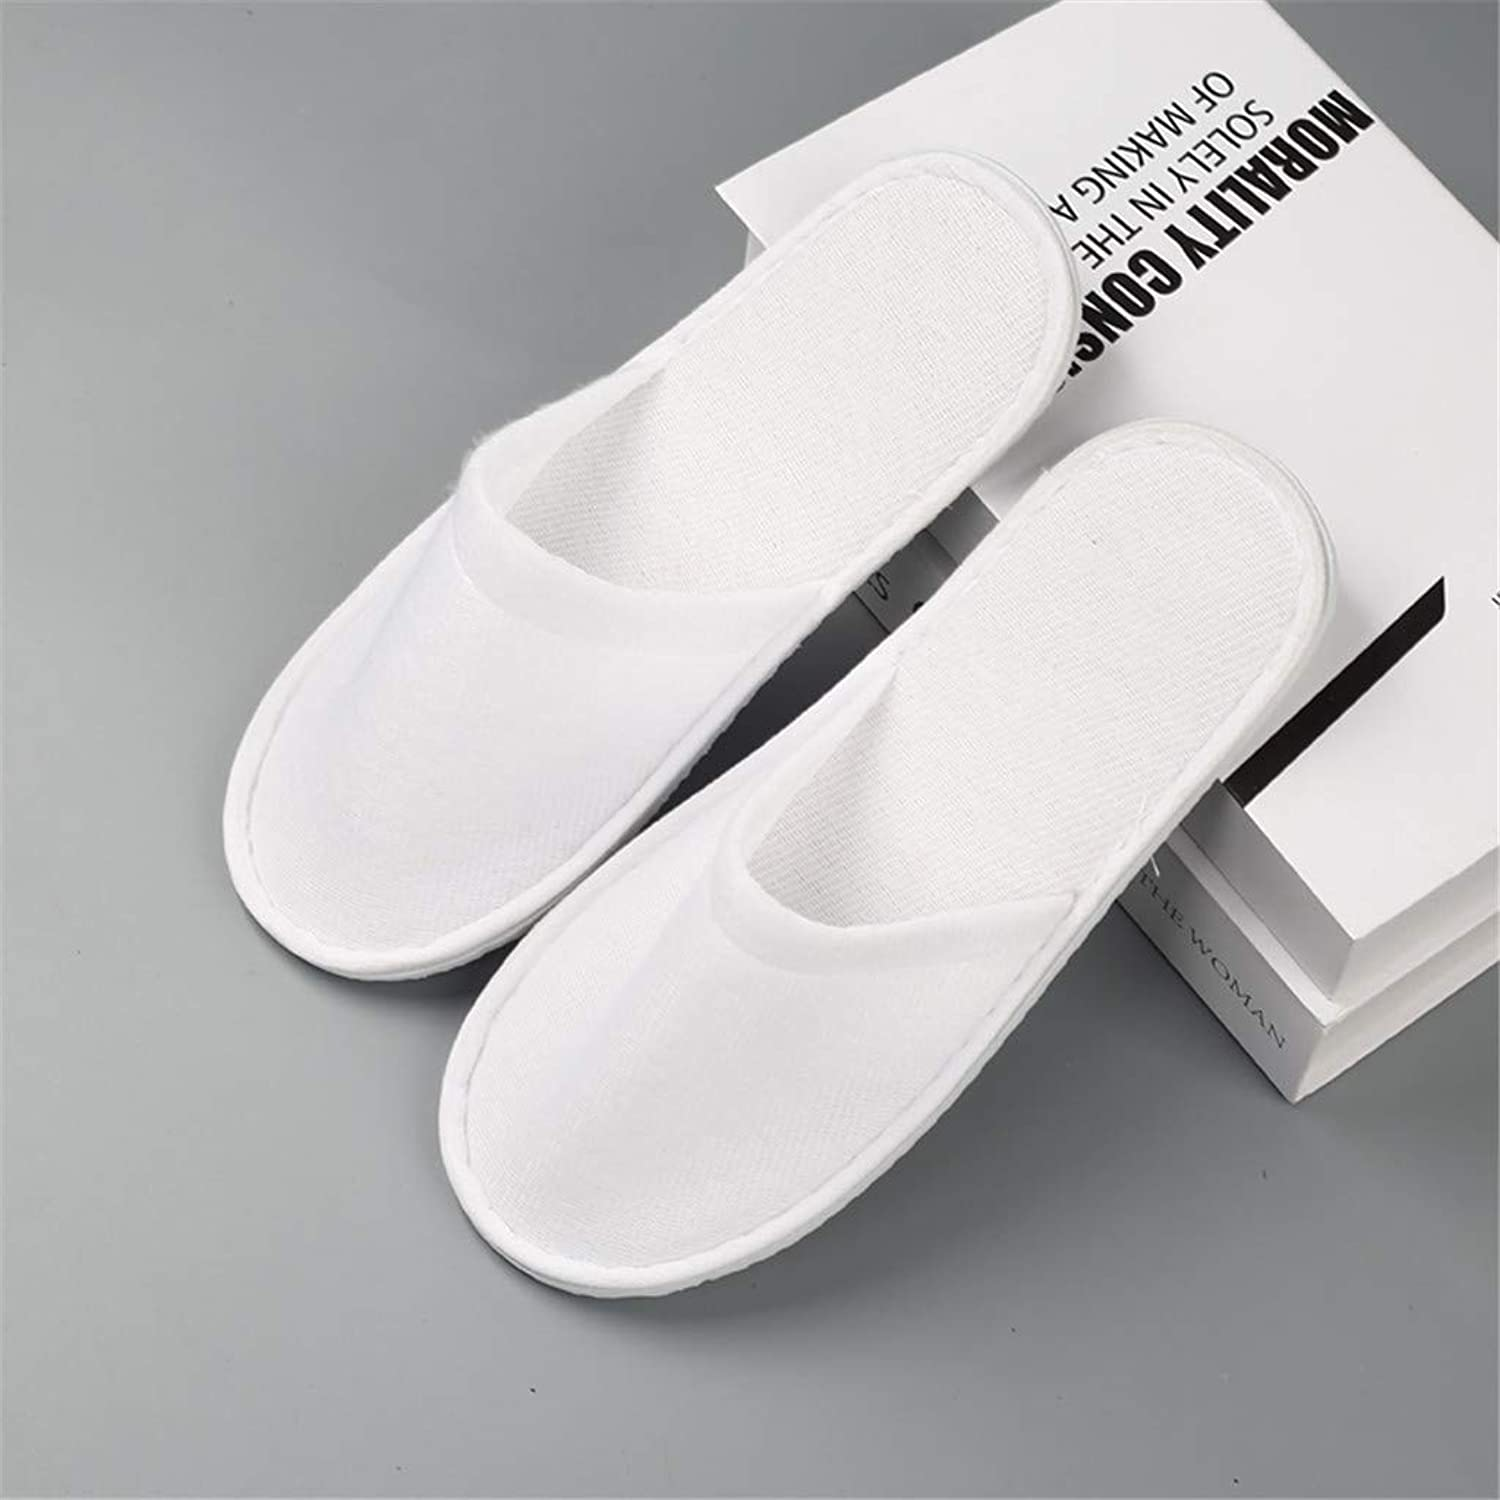 10 Pairs,Spa Slippers 6Mm EVA Sole Clubhouse Beauty Salon Slippers Hospitality Disposable Slippers,White